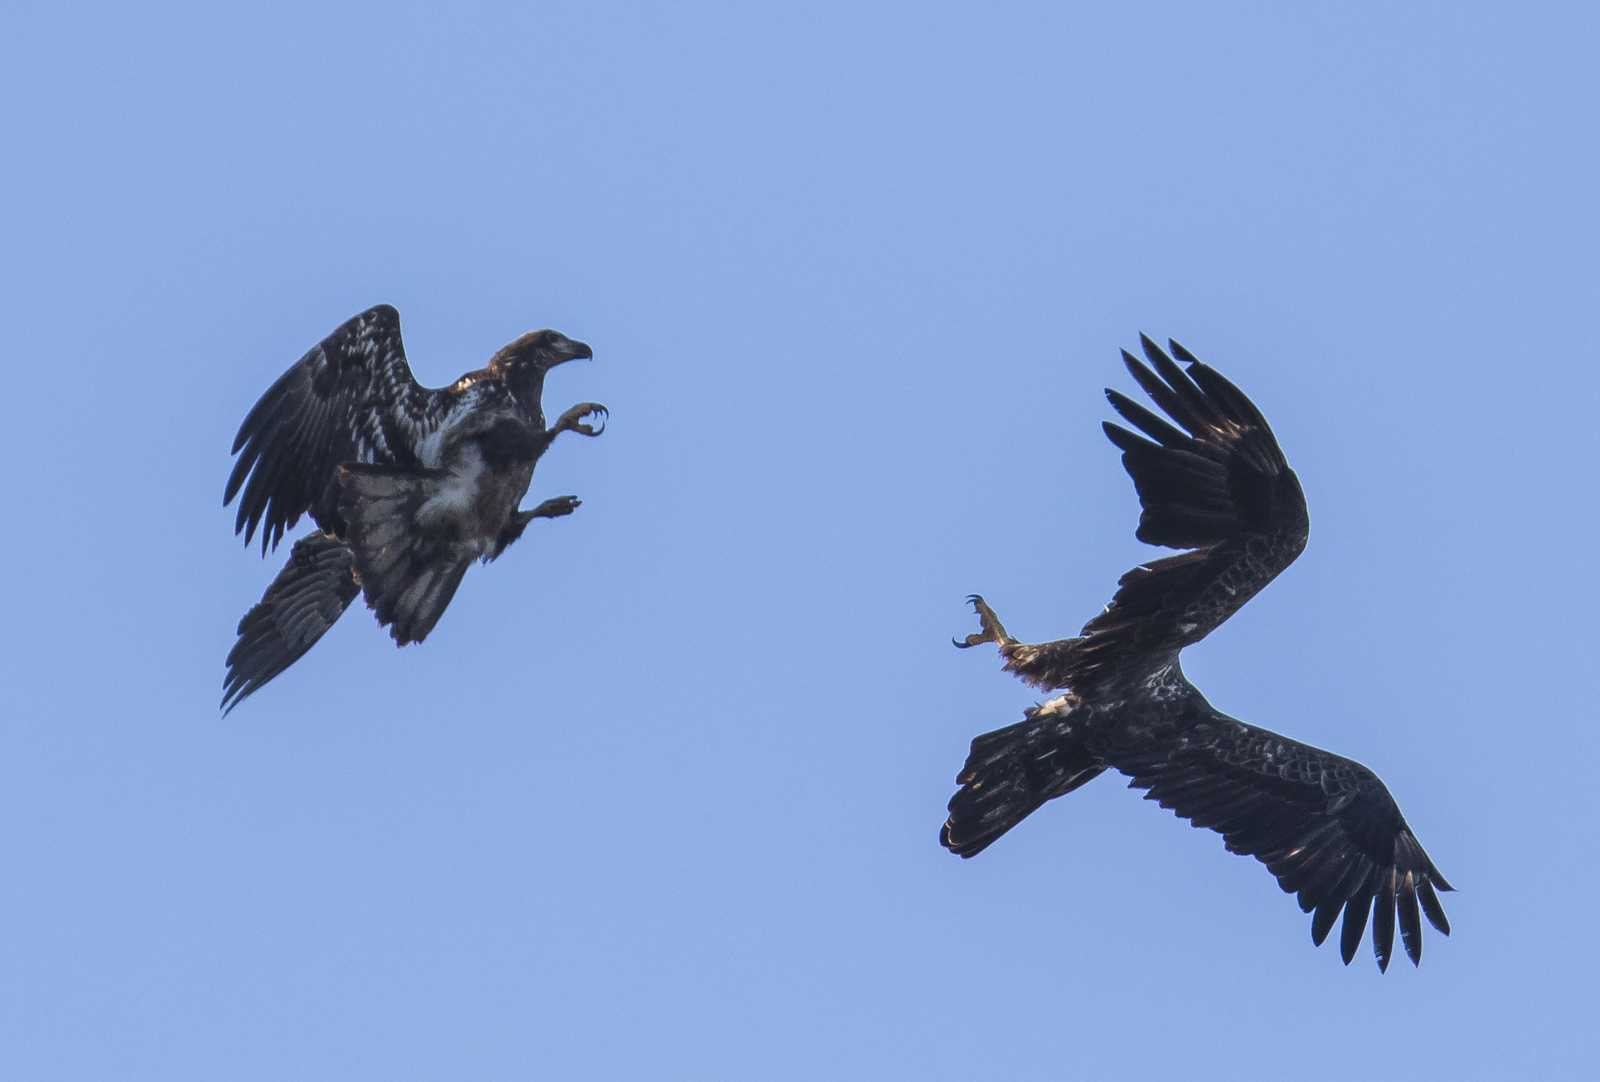 eagles tangling in mid-air 1